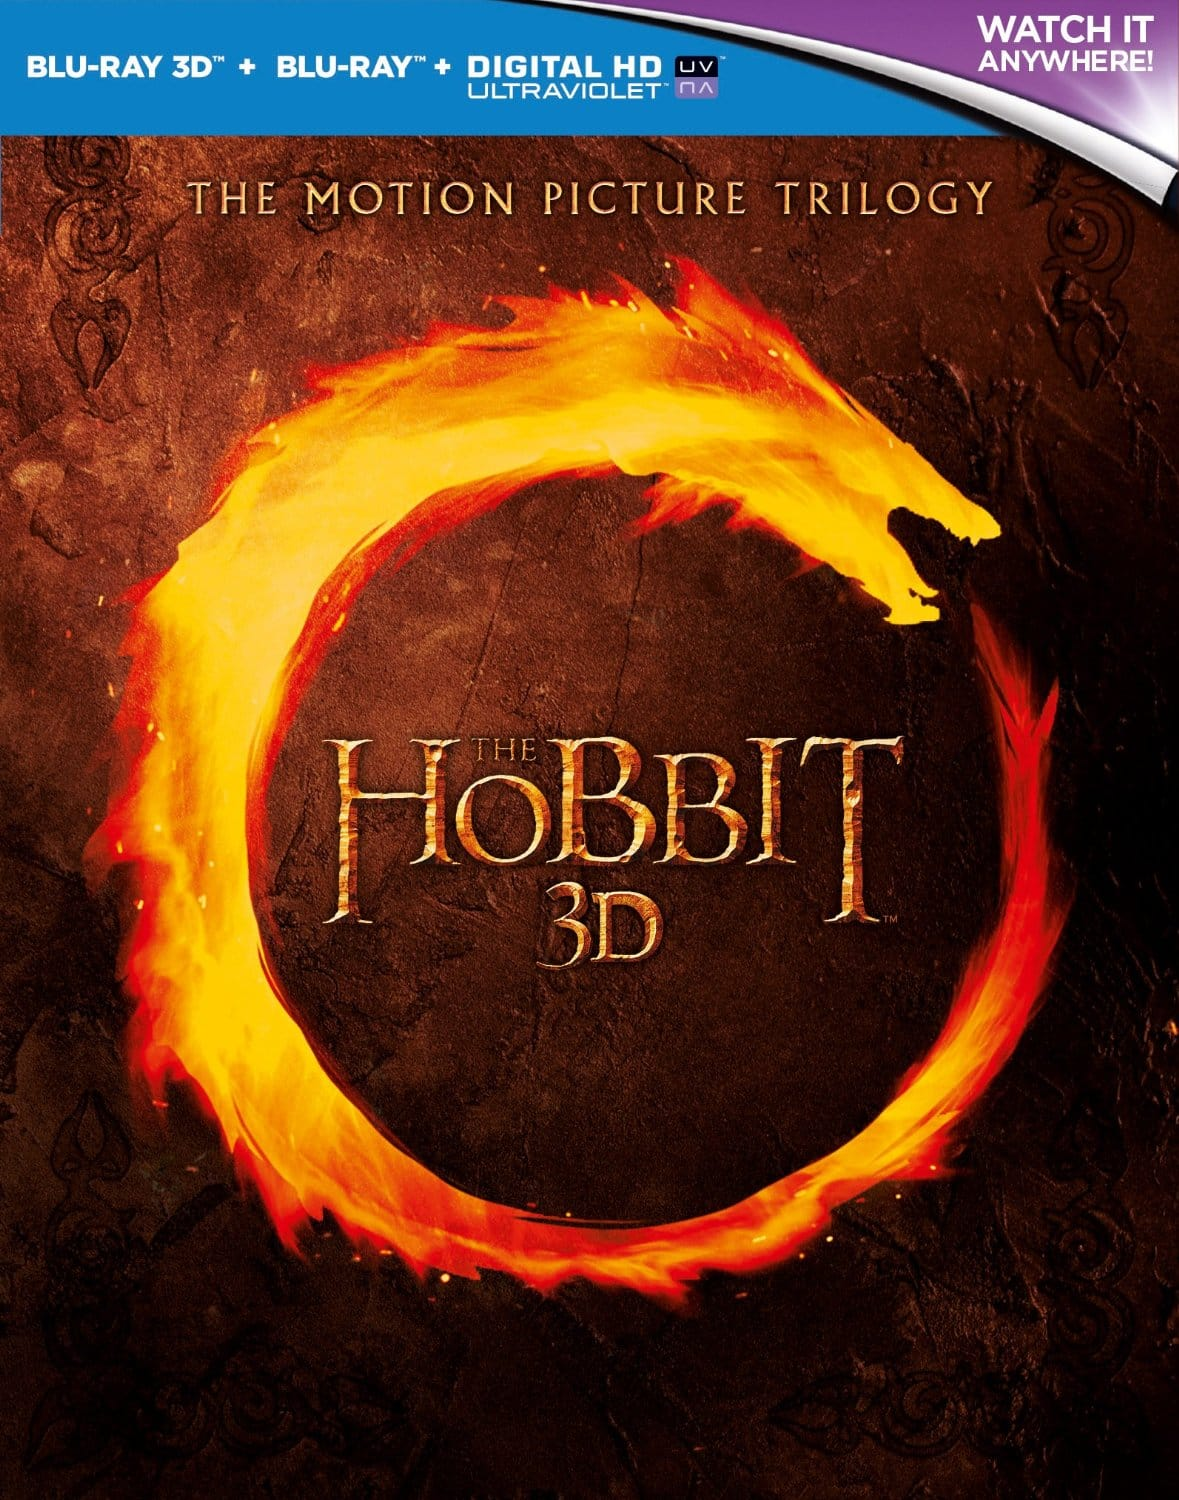 Region Free: The Hobbit: Trilogy (Blu-ray 3D + Blu-ray) $30.74 Shipped